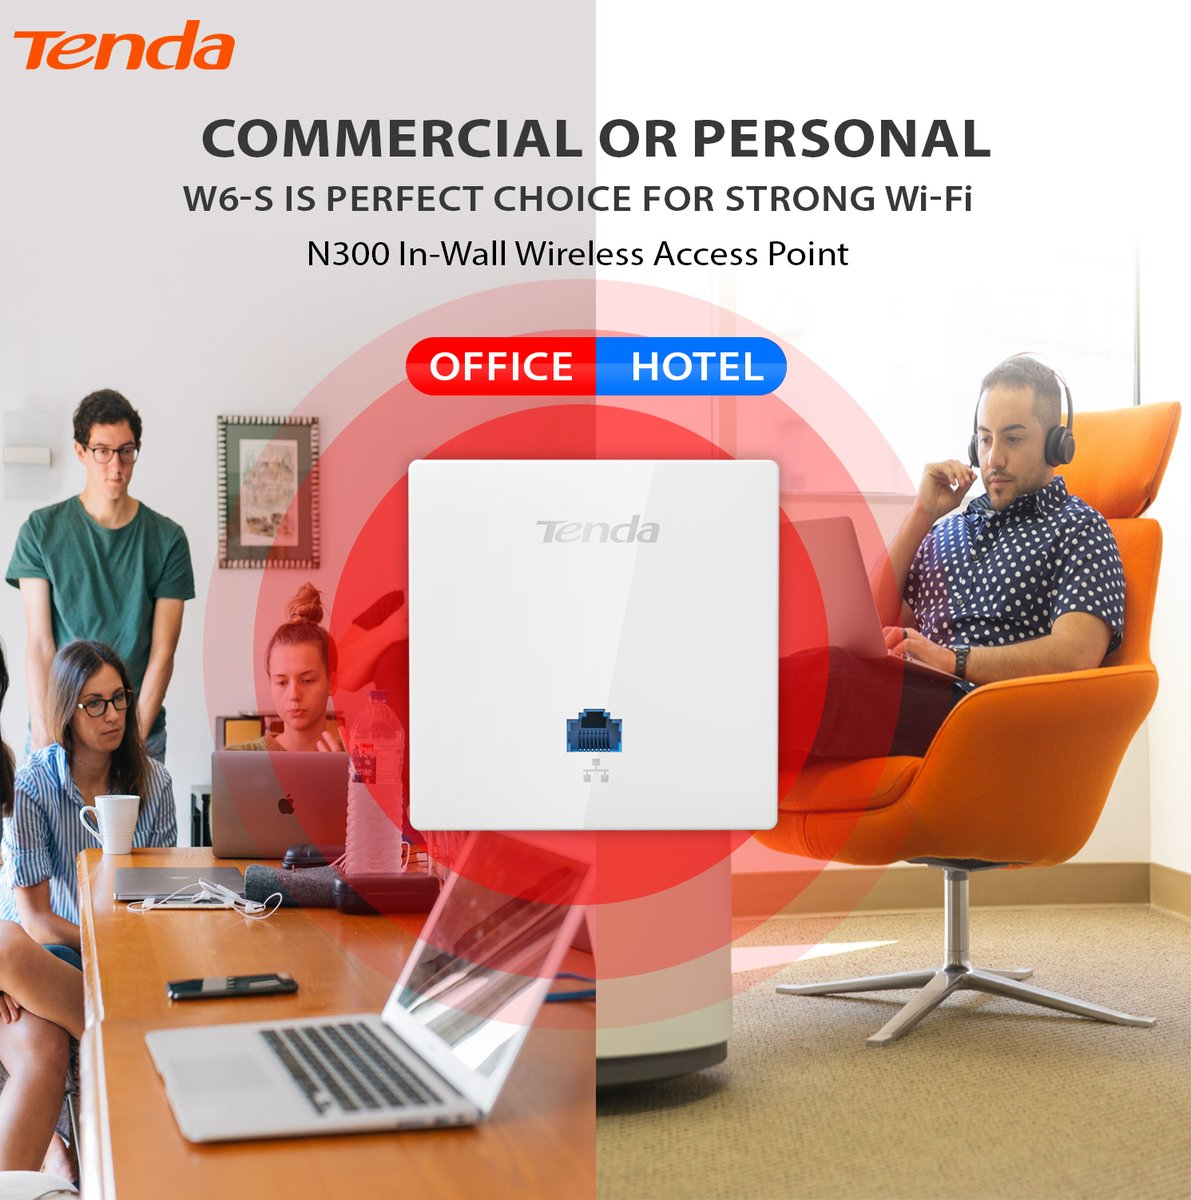 Wi-Fi helps your employees strengthen your Business, Wi-Fi helps your customers stay loyal long term.Know more: http://www.tendacn.com/us/product/w6-s.html…#Tenda #WiFi #AccessPoint #WallMount #Hotel #School #Office #Home #StableWiFi